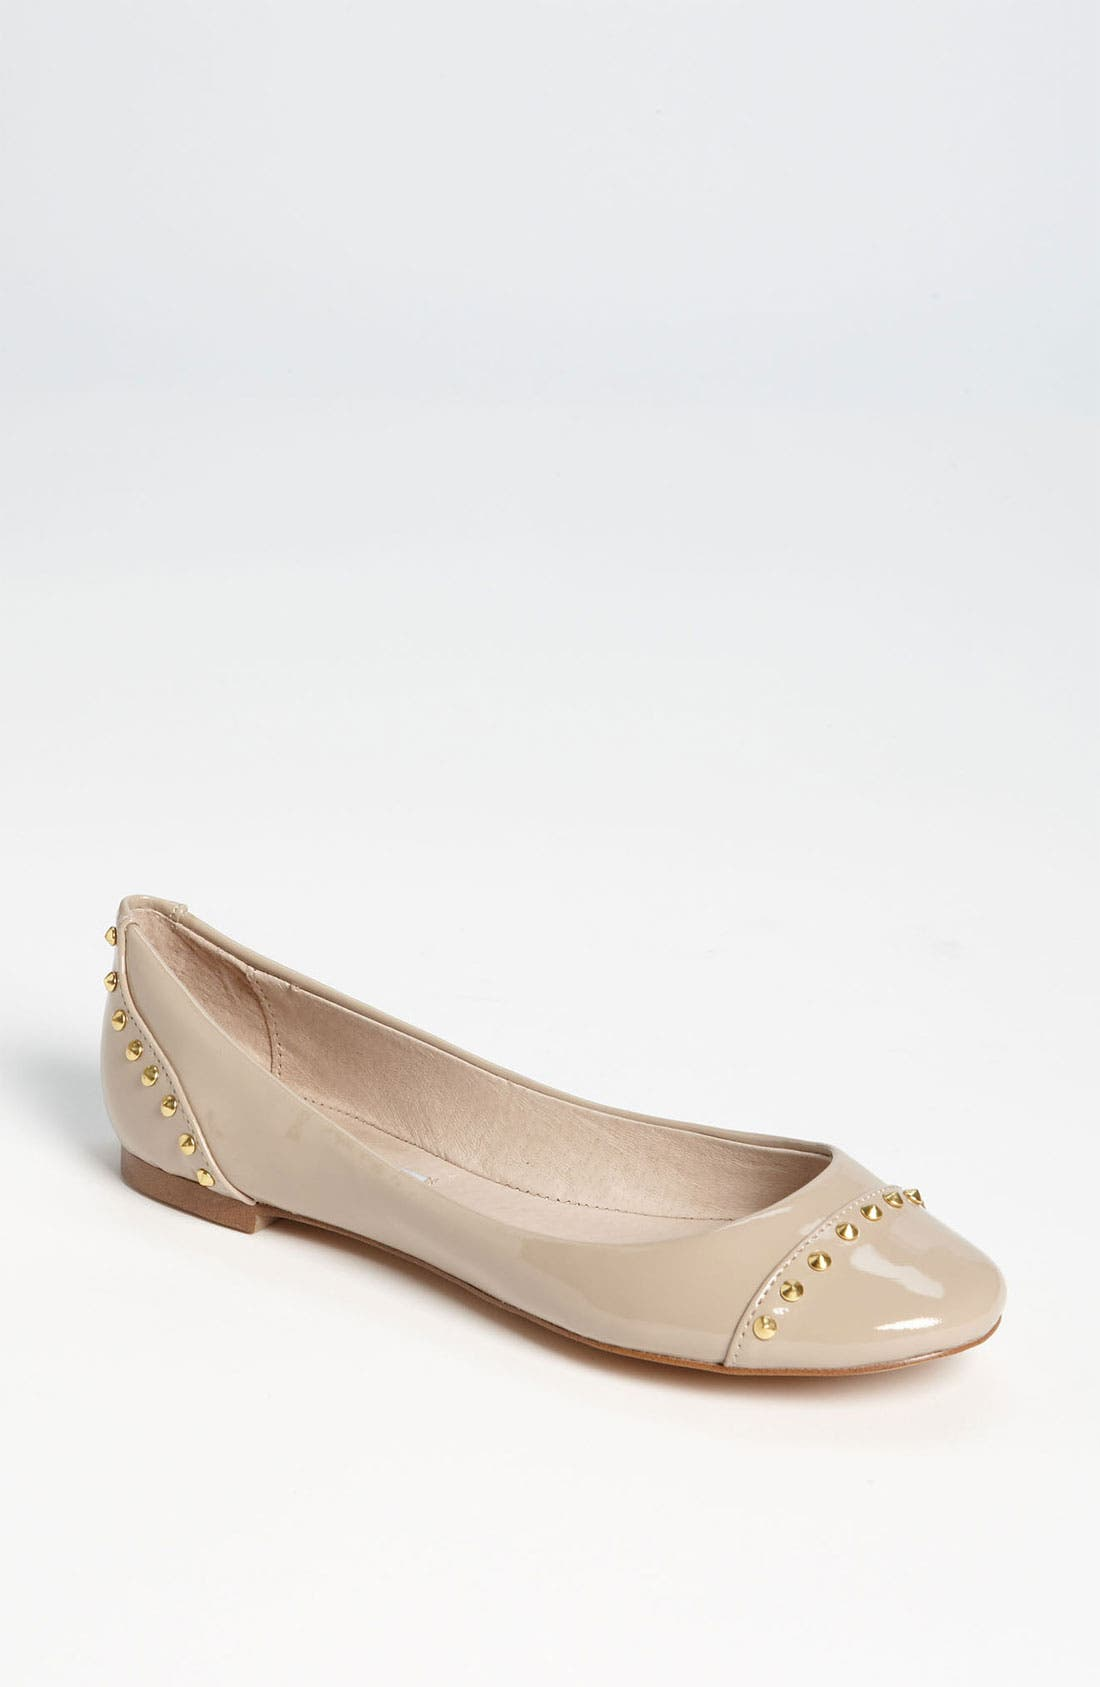 Alternate Image 1 Selected - Steve Madden 'Kstudd' Flat